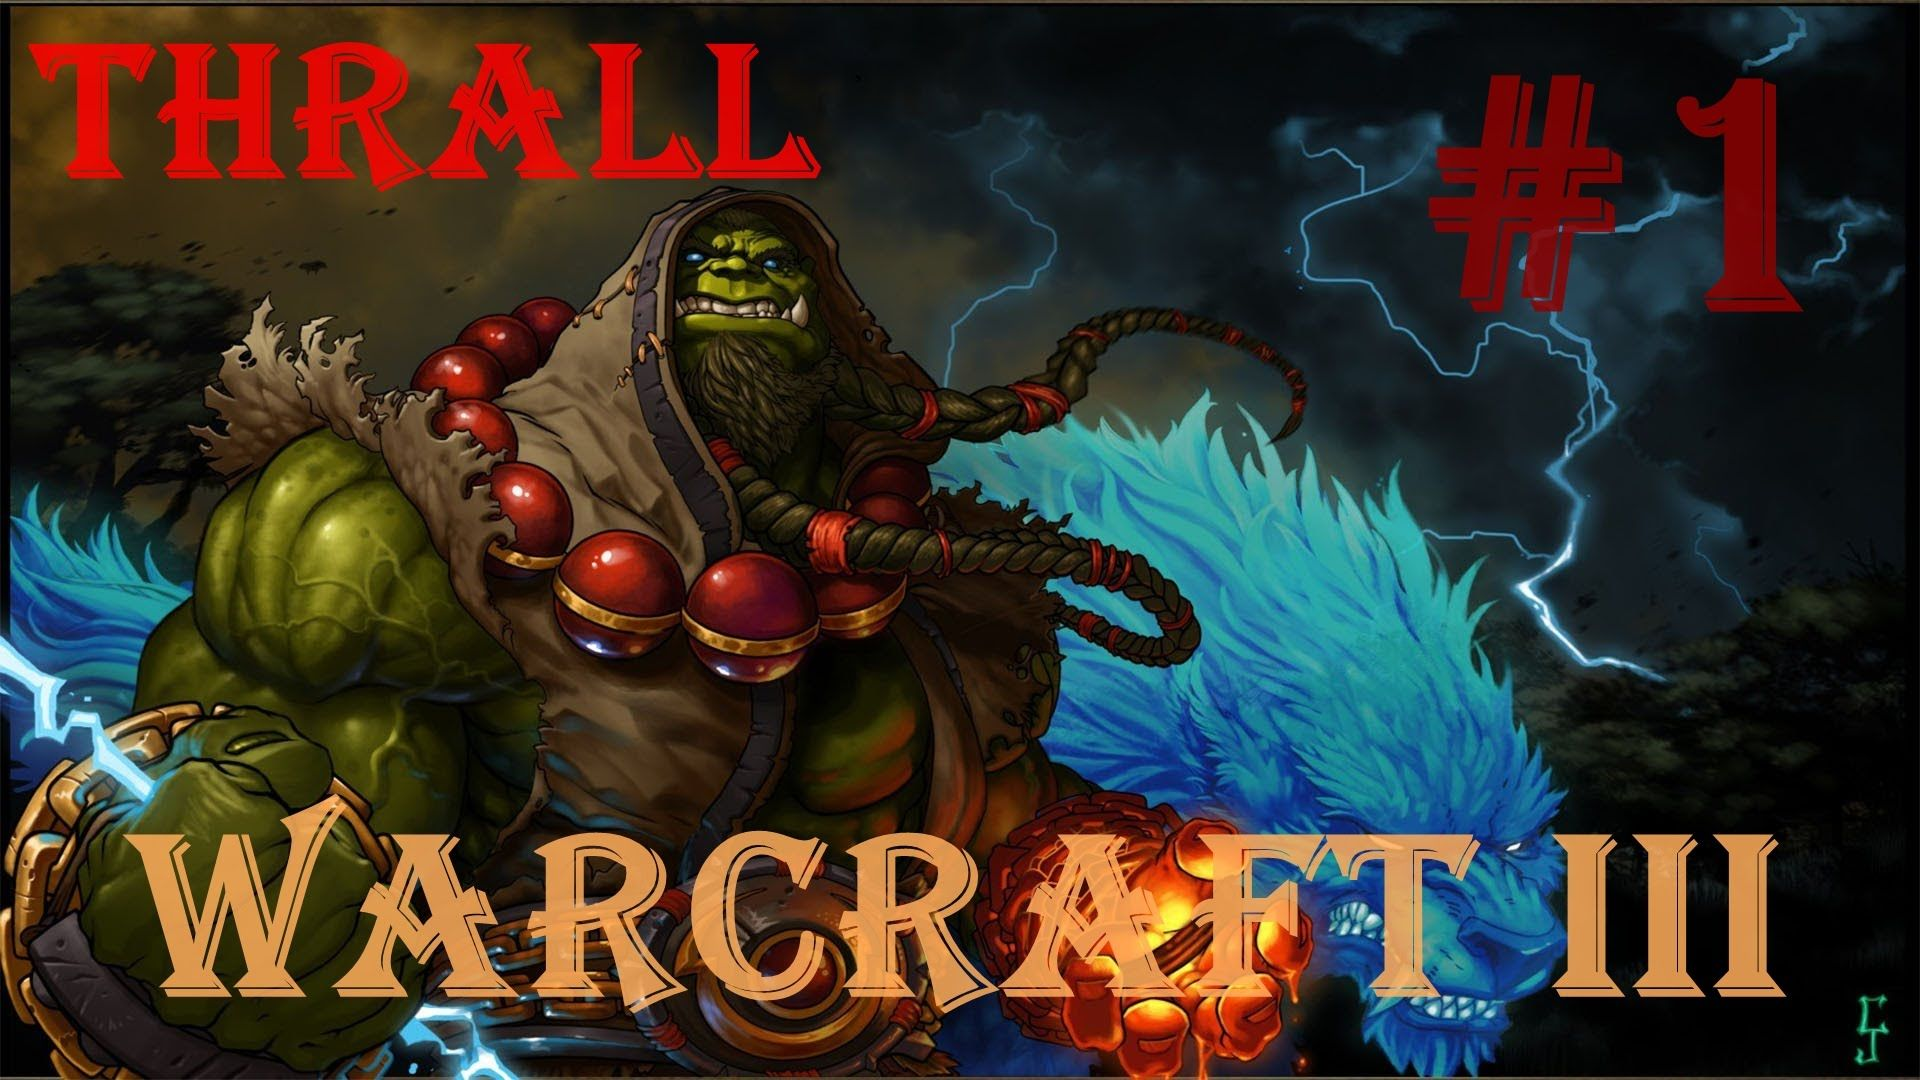 Warcraft III : Reign or Chaos - Exodus of the Horde (Thrall) Chapter 1